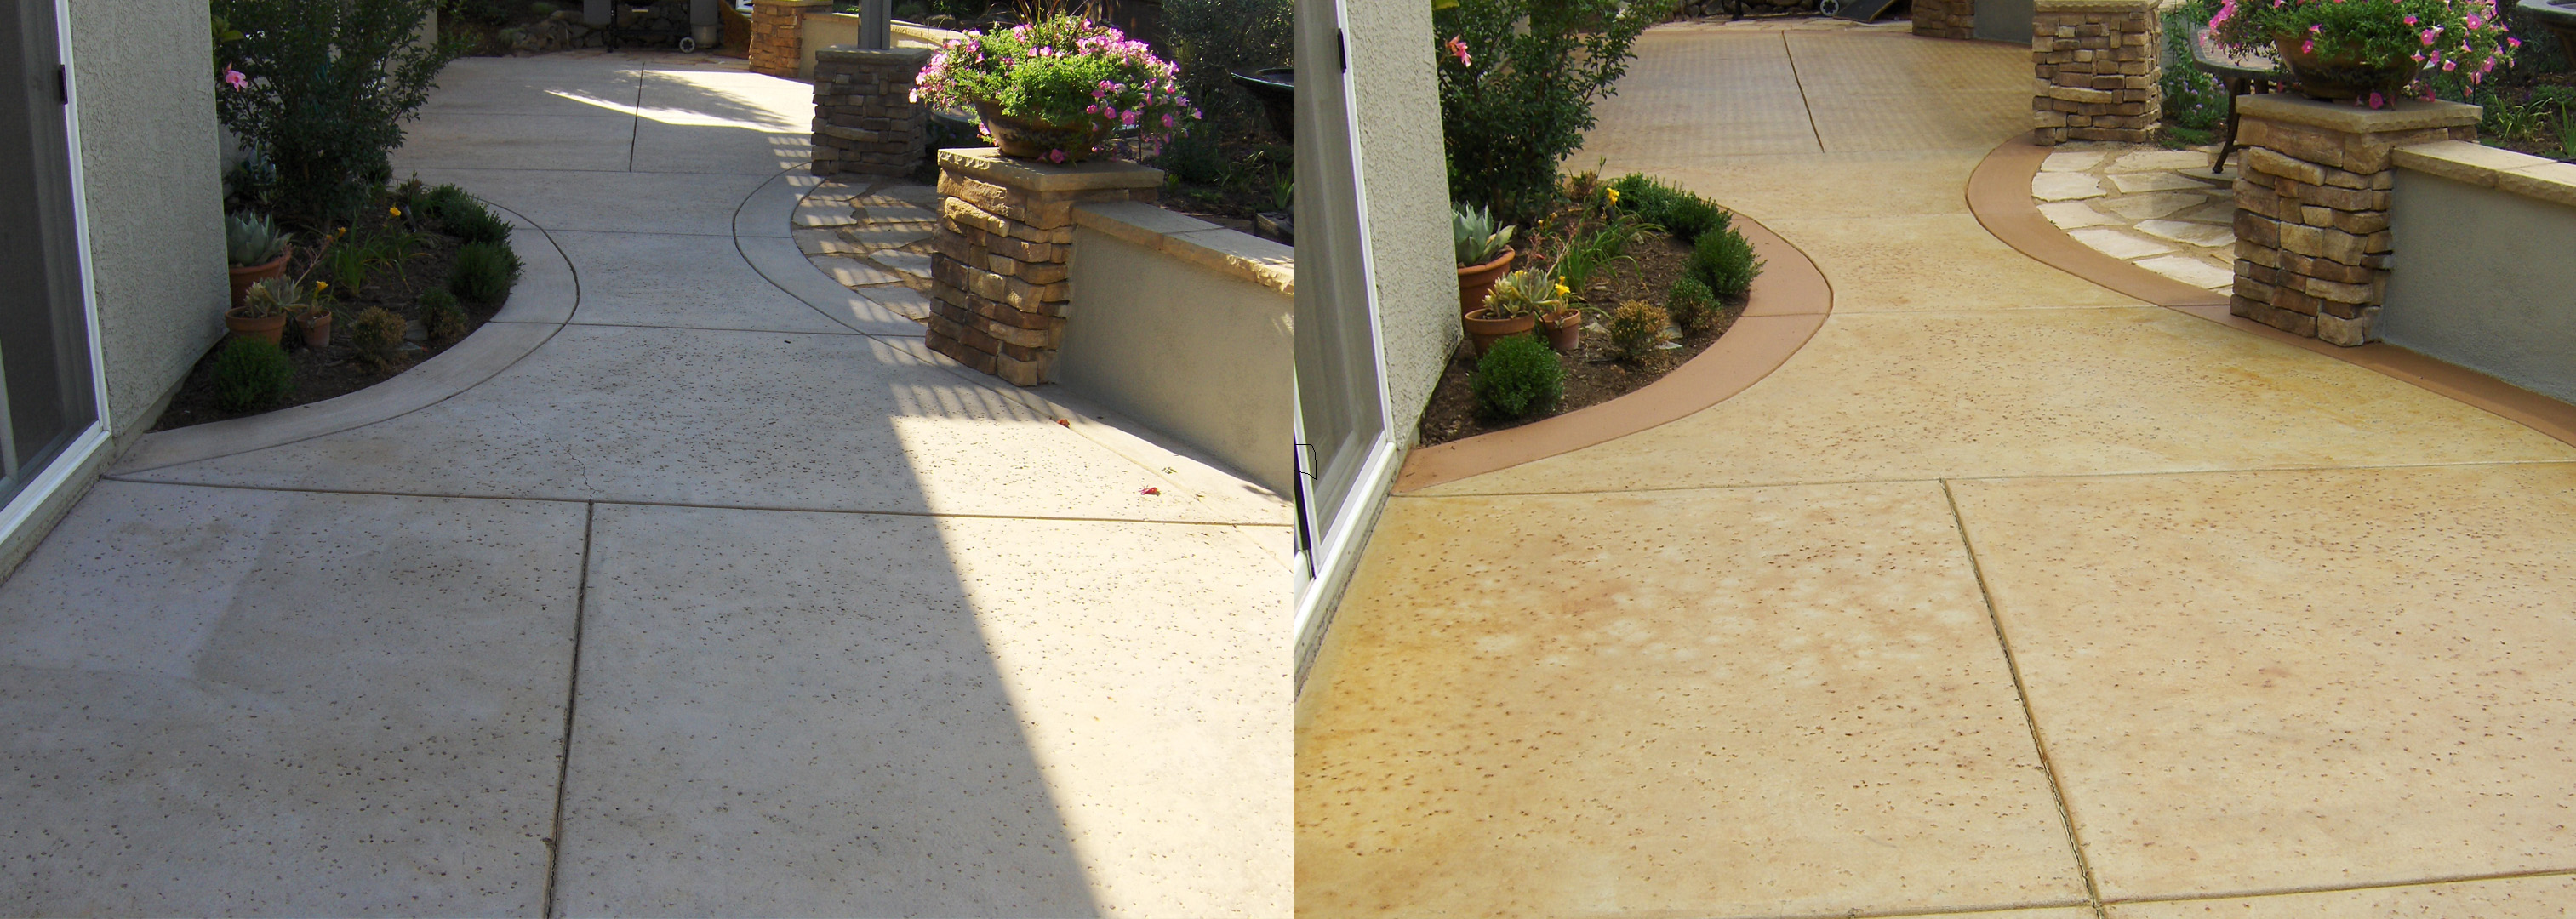 July 2016 advanced sealing solutions for Remove stains from concrete driveway